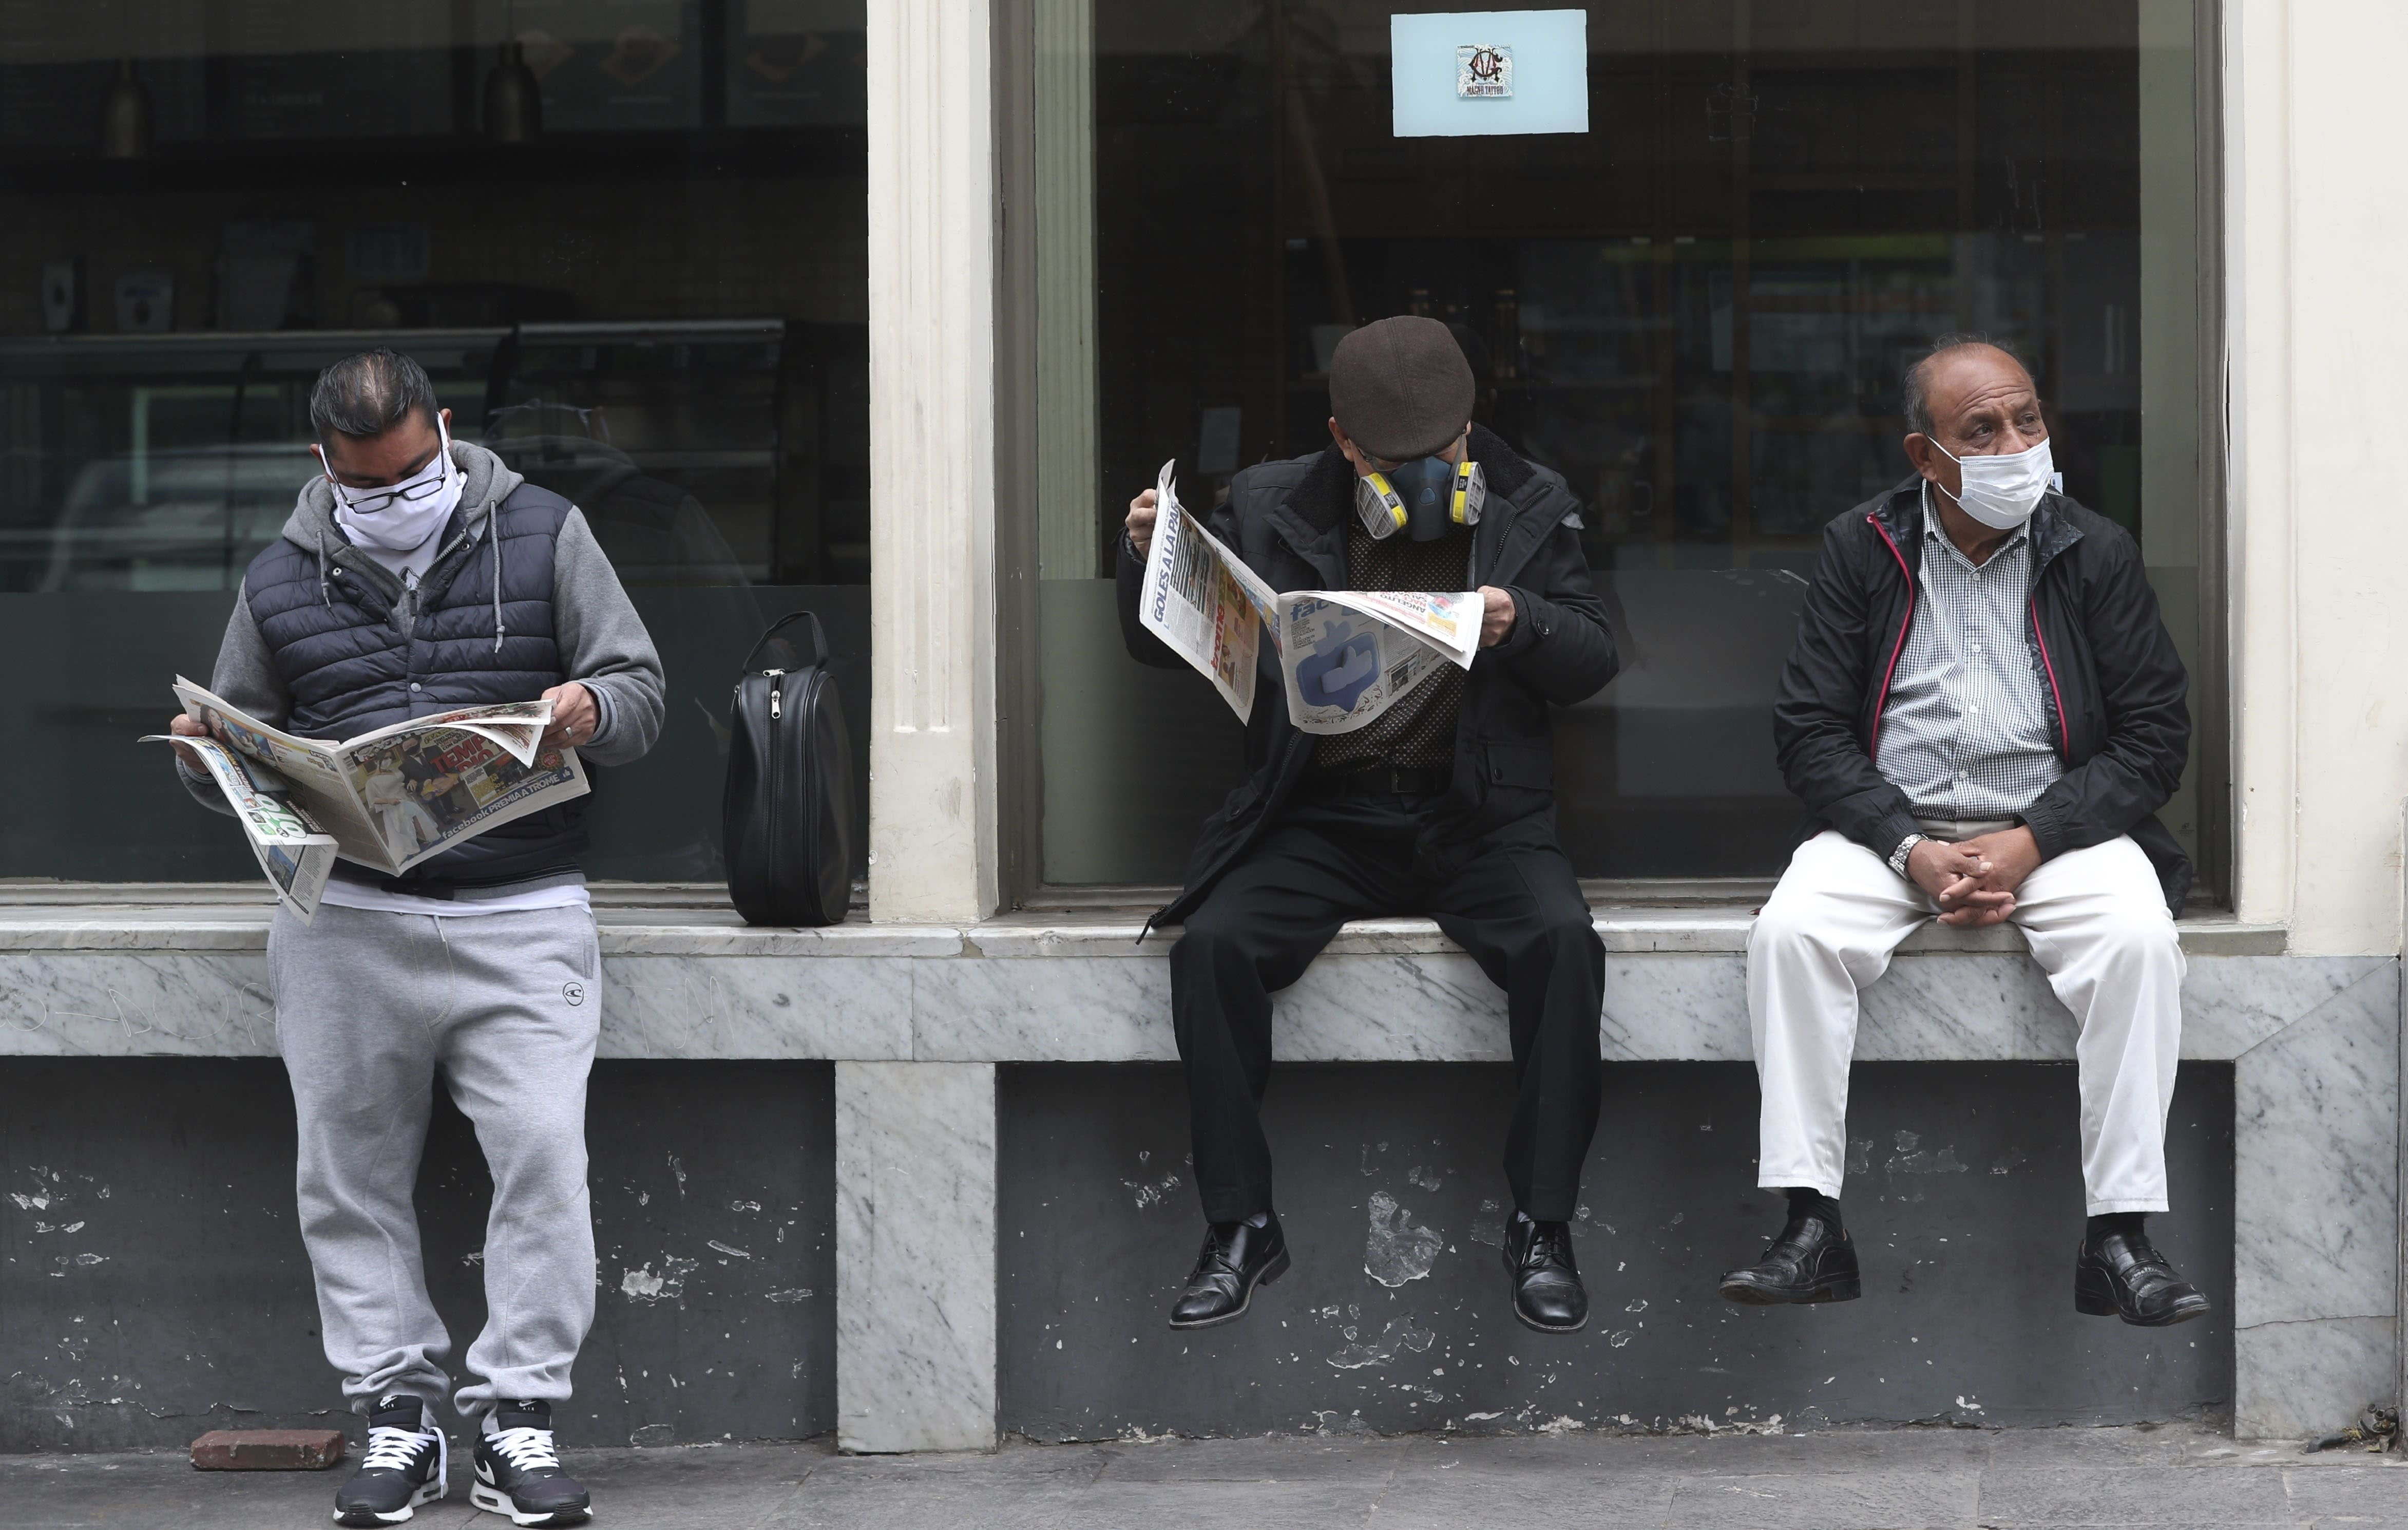 People wearing masks to curb the spread of the new coronavirus wait for businesses to open in downtown Lima, Peru, Wednesday, July 1, 2020. (AP Photo/Martin Mejia)